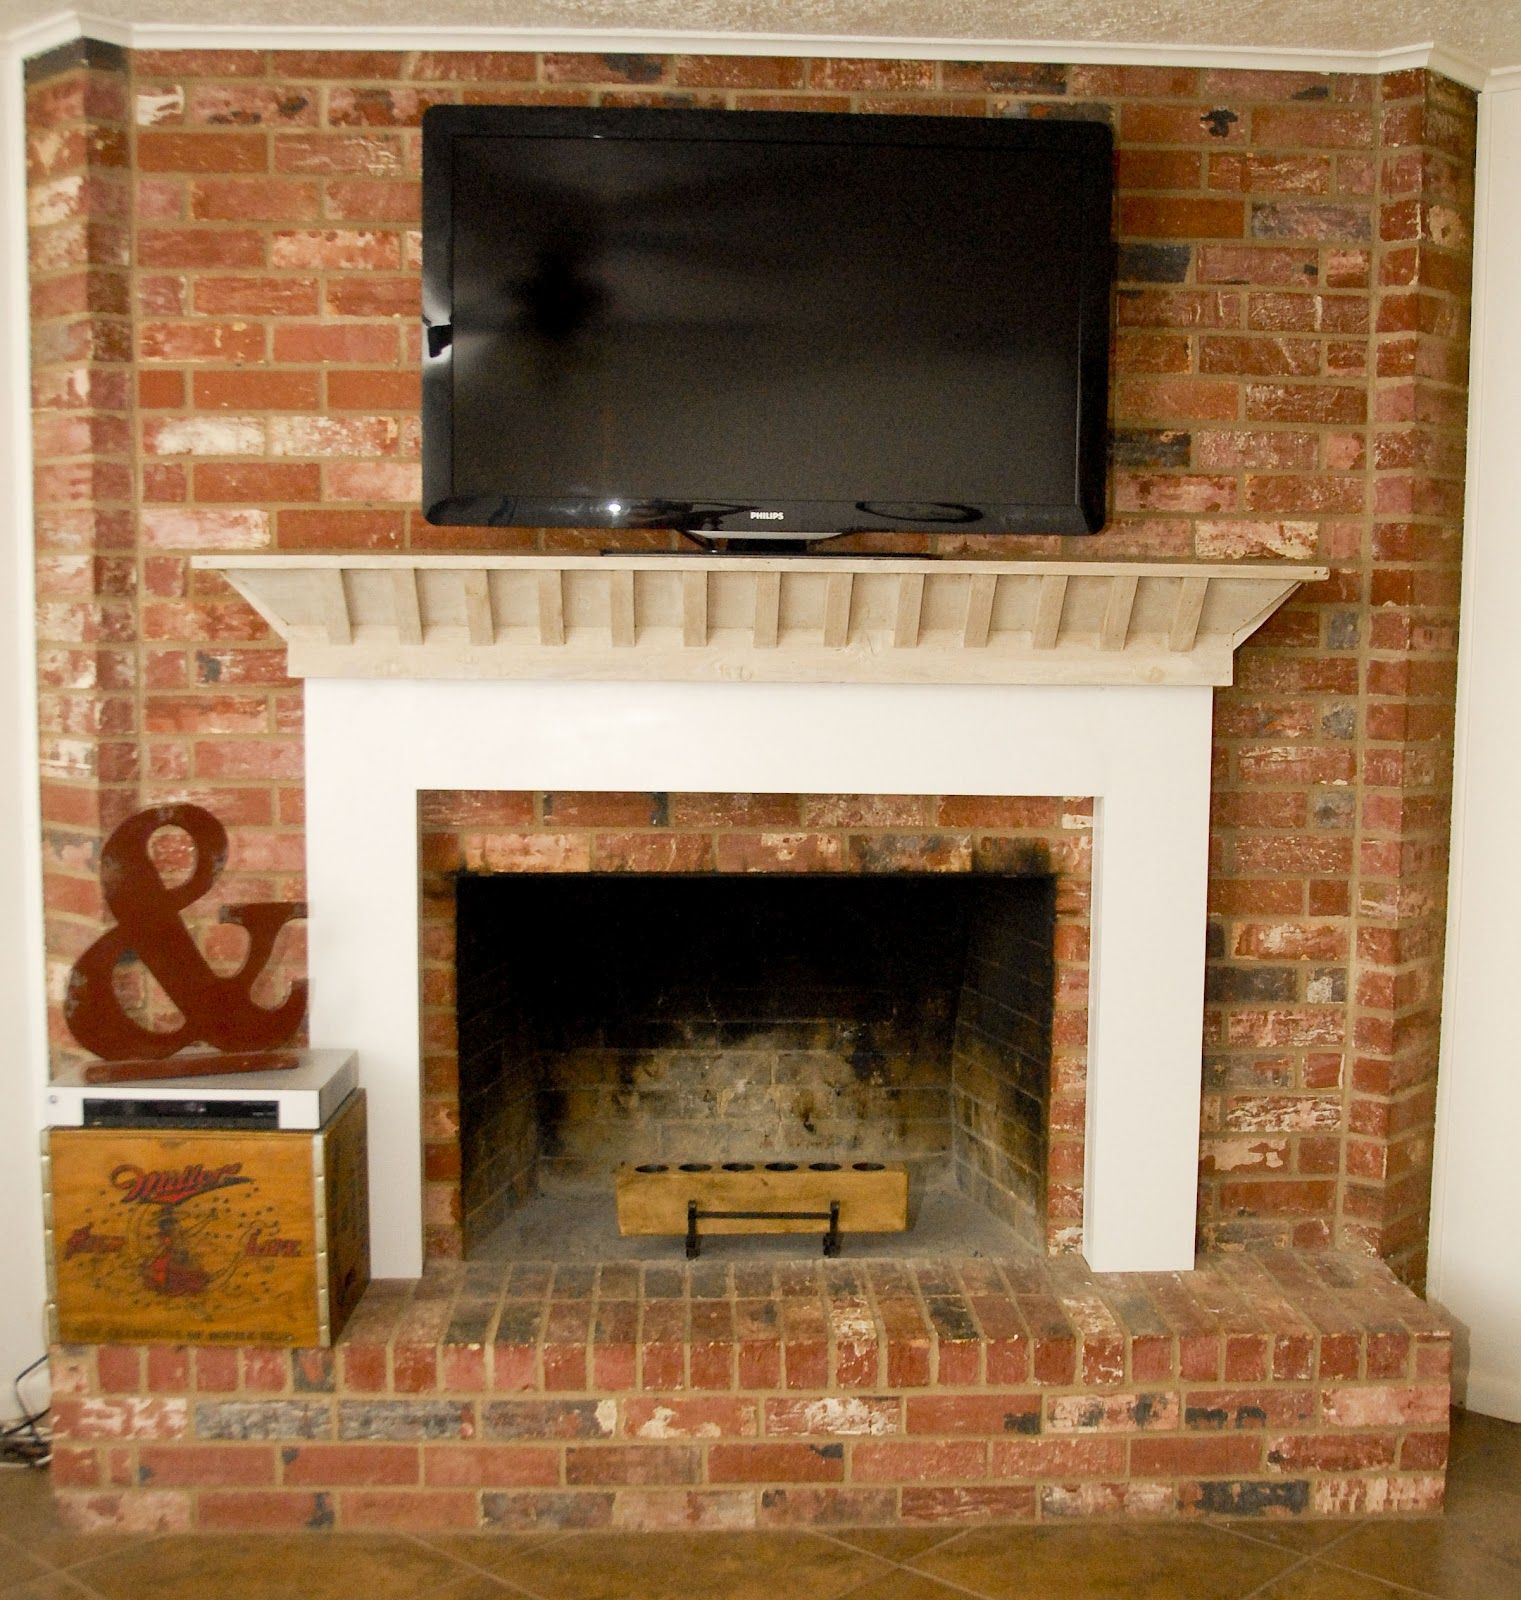 adding aLarge TV Over existing Fireplace   to decorate it we ll add a little molding around